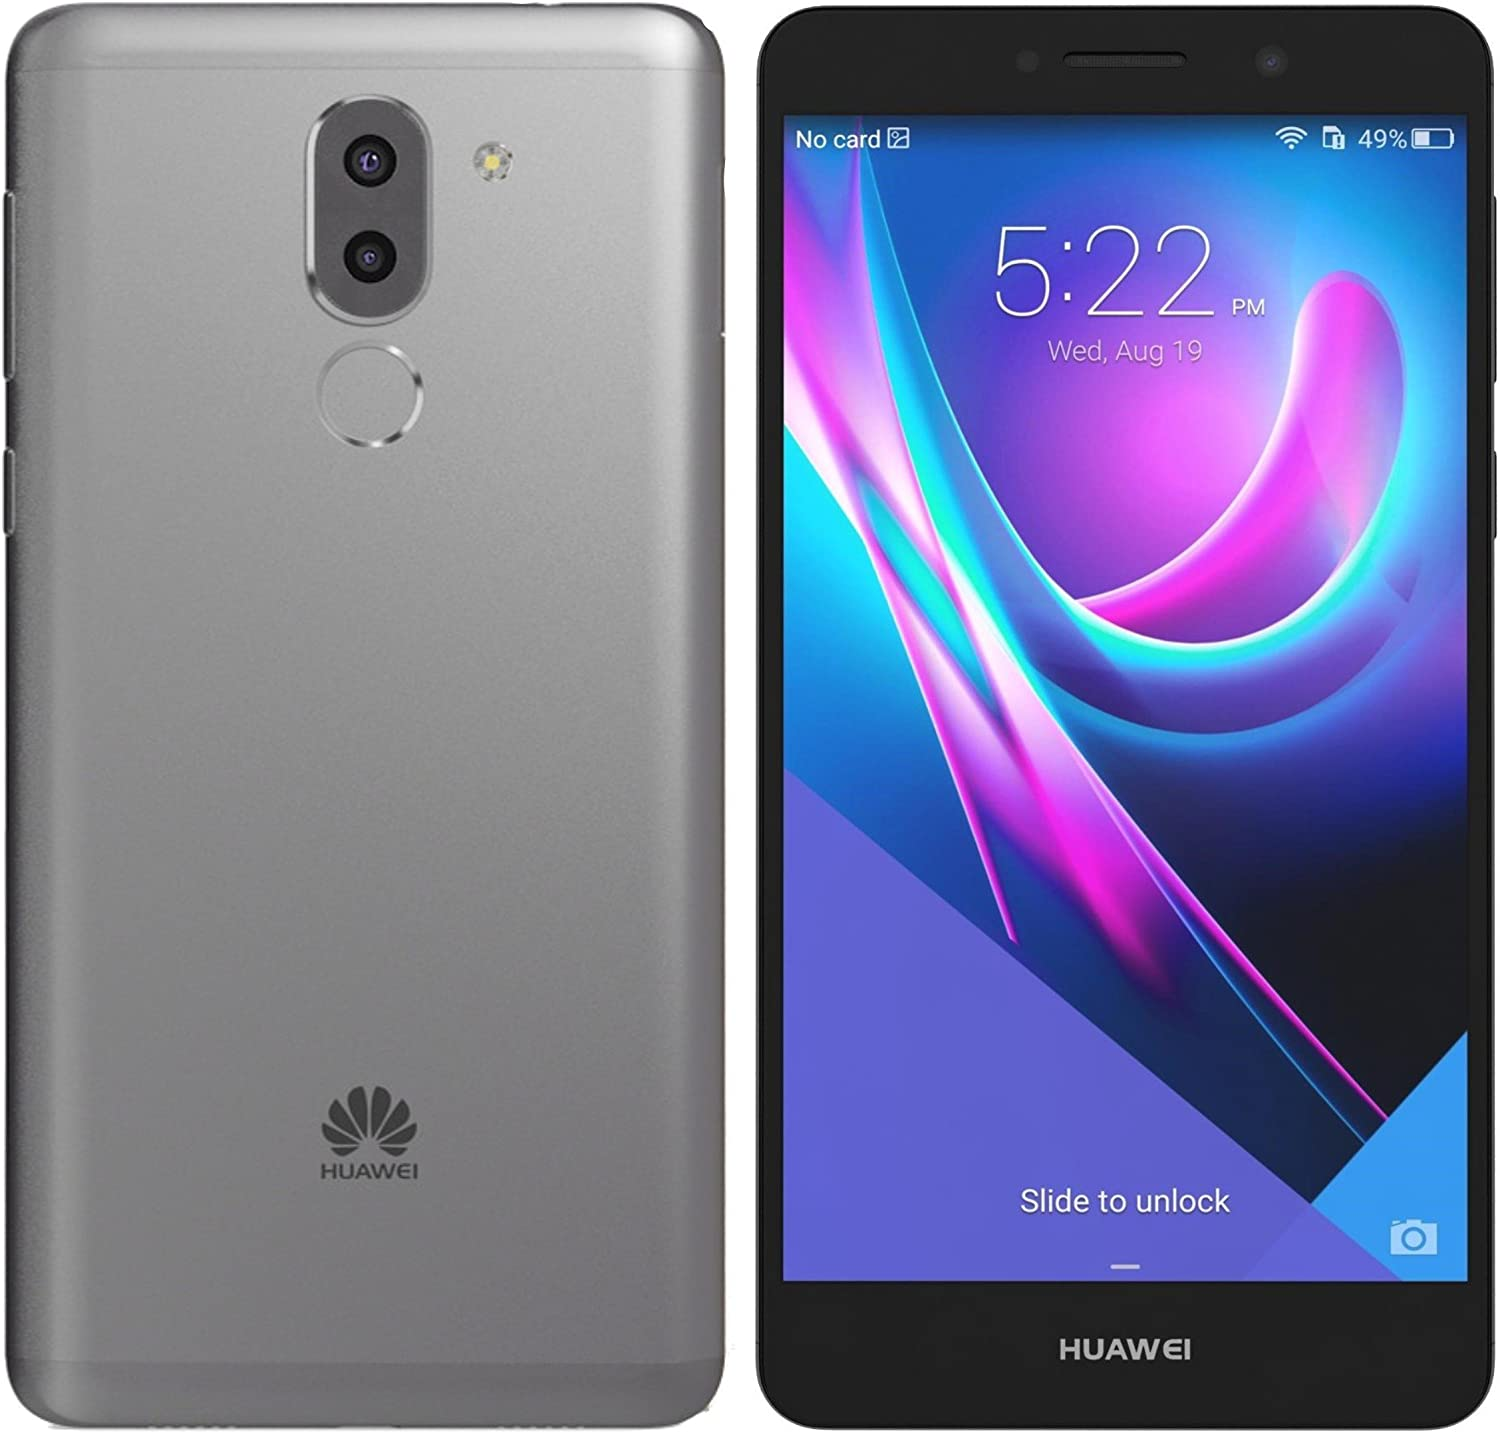 Huawei Mate 9 Lite L23 Dual Sim 32 Gb 4 G Lte Factory Unlocked Android Smartphone Gris